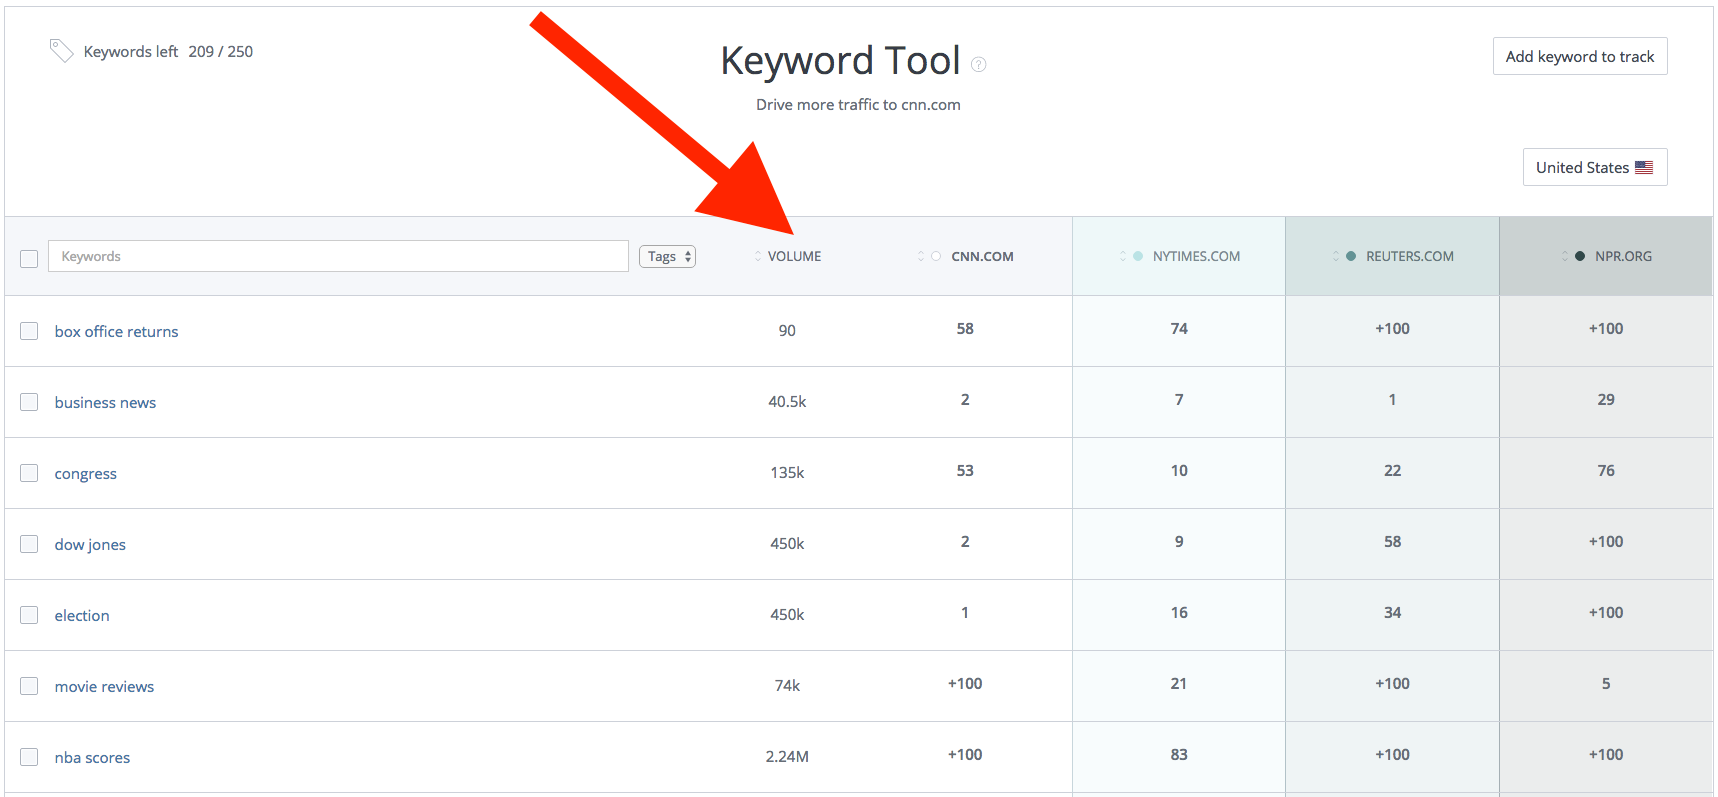 WooRank Keyword Tool average monthly search volume